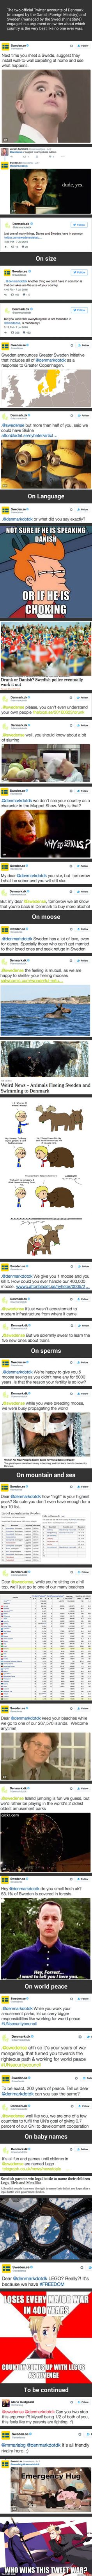 Modern Warfare: Denmark And Sweden Had An Epic Twitter Fight About Mooses And Sperms